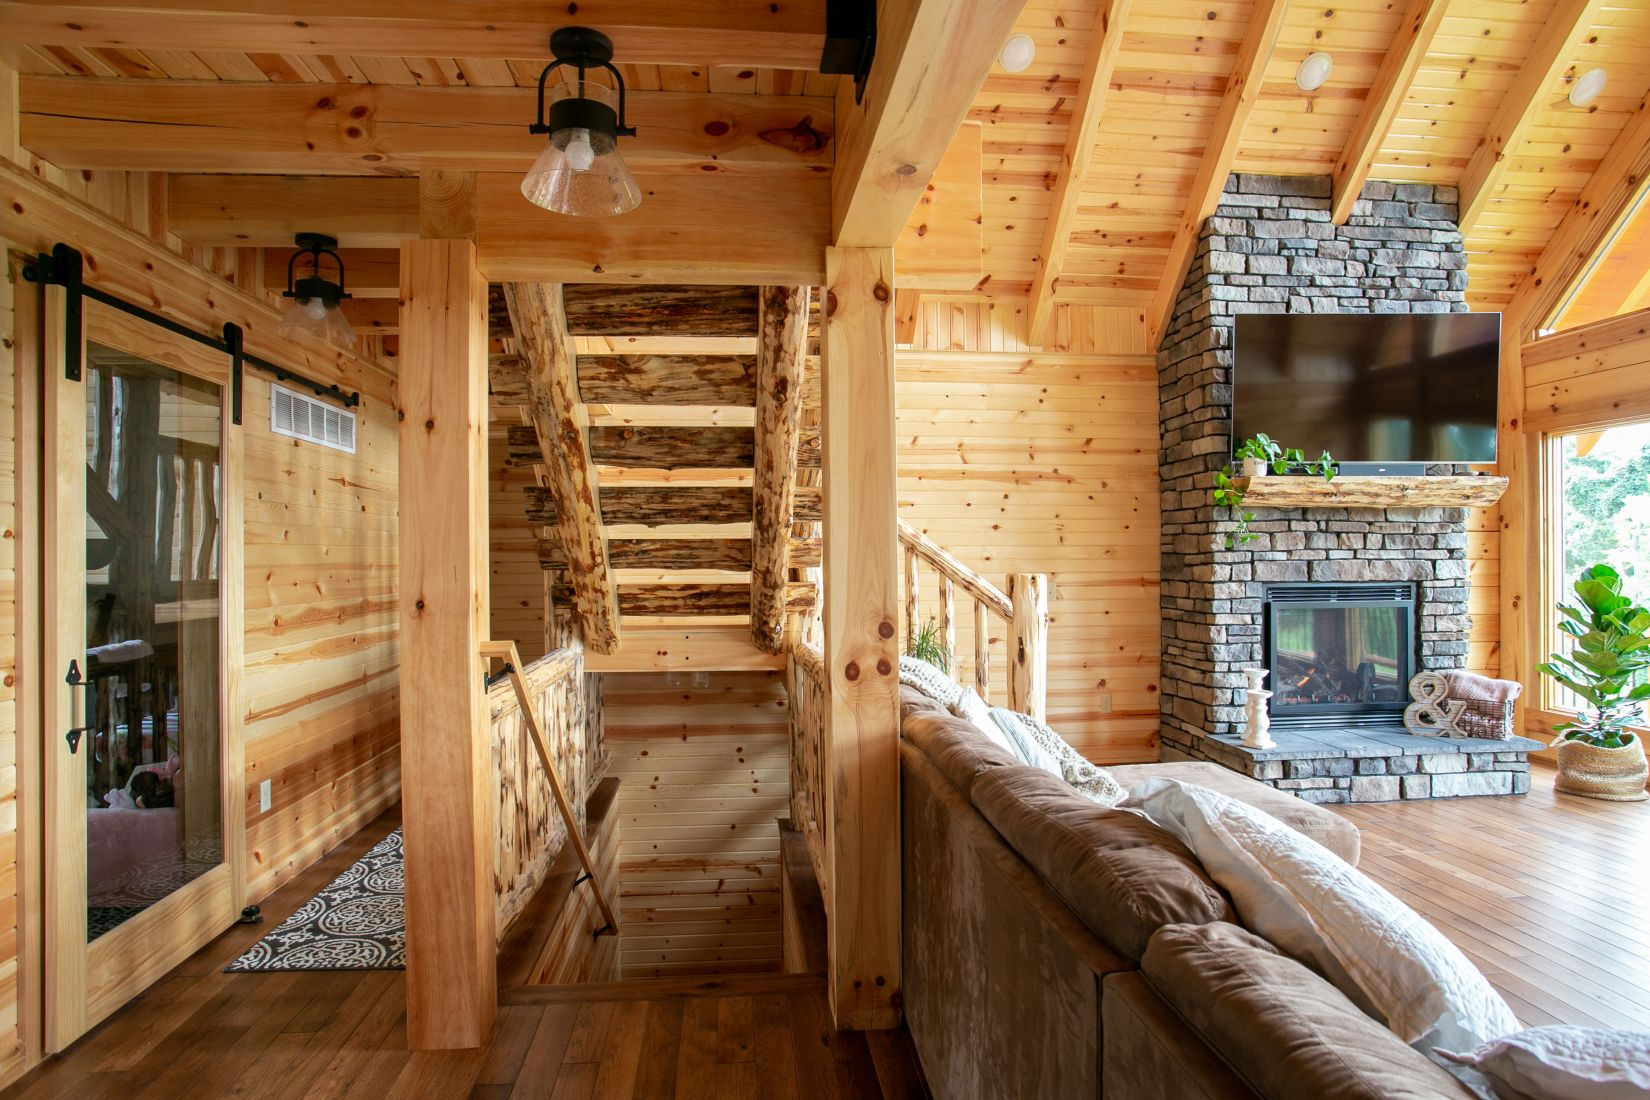 Rustic Log Stairway to Second Floor - Square Log Roof System